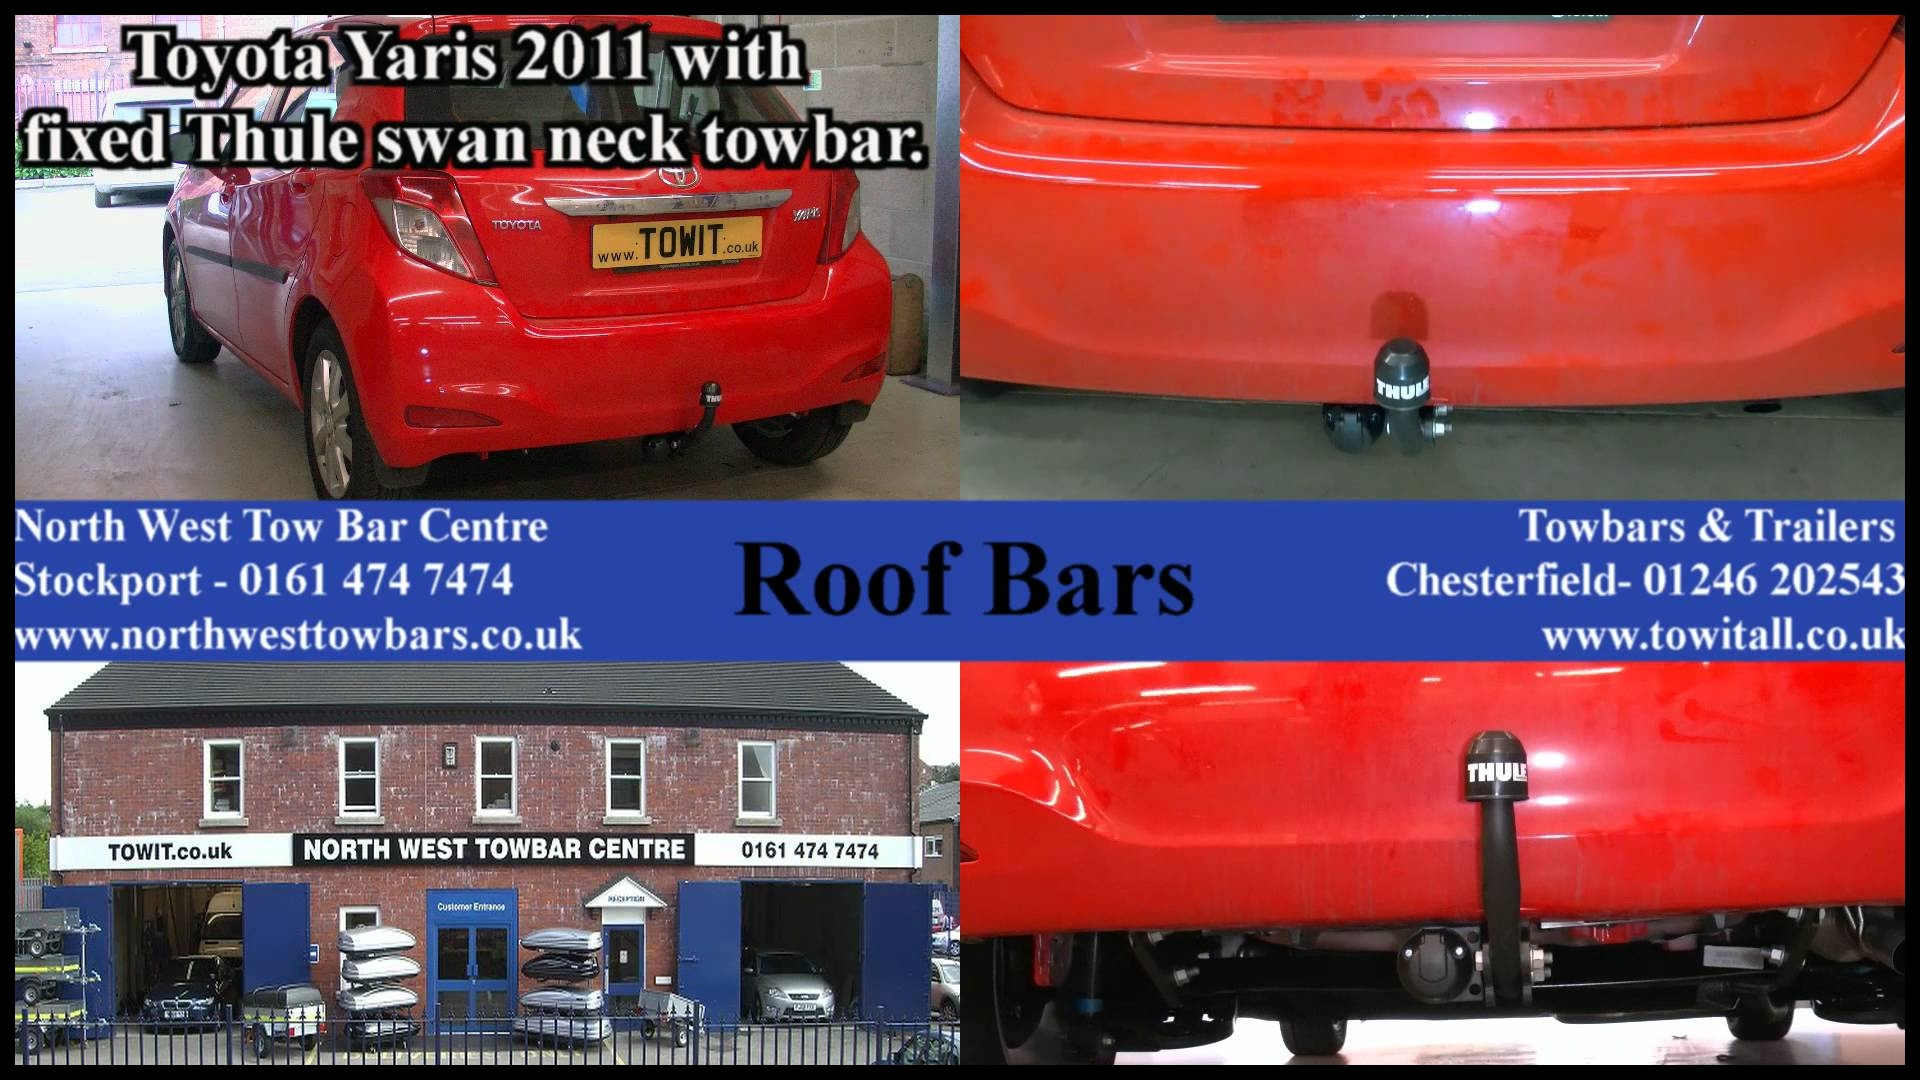 Toyota Yaris with Thule fixed Towbar